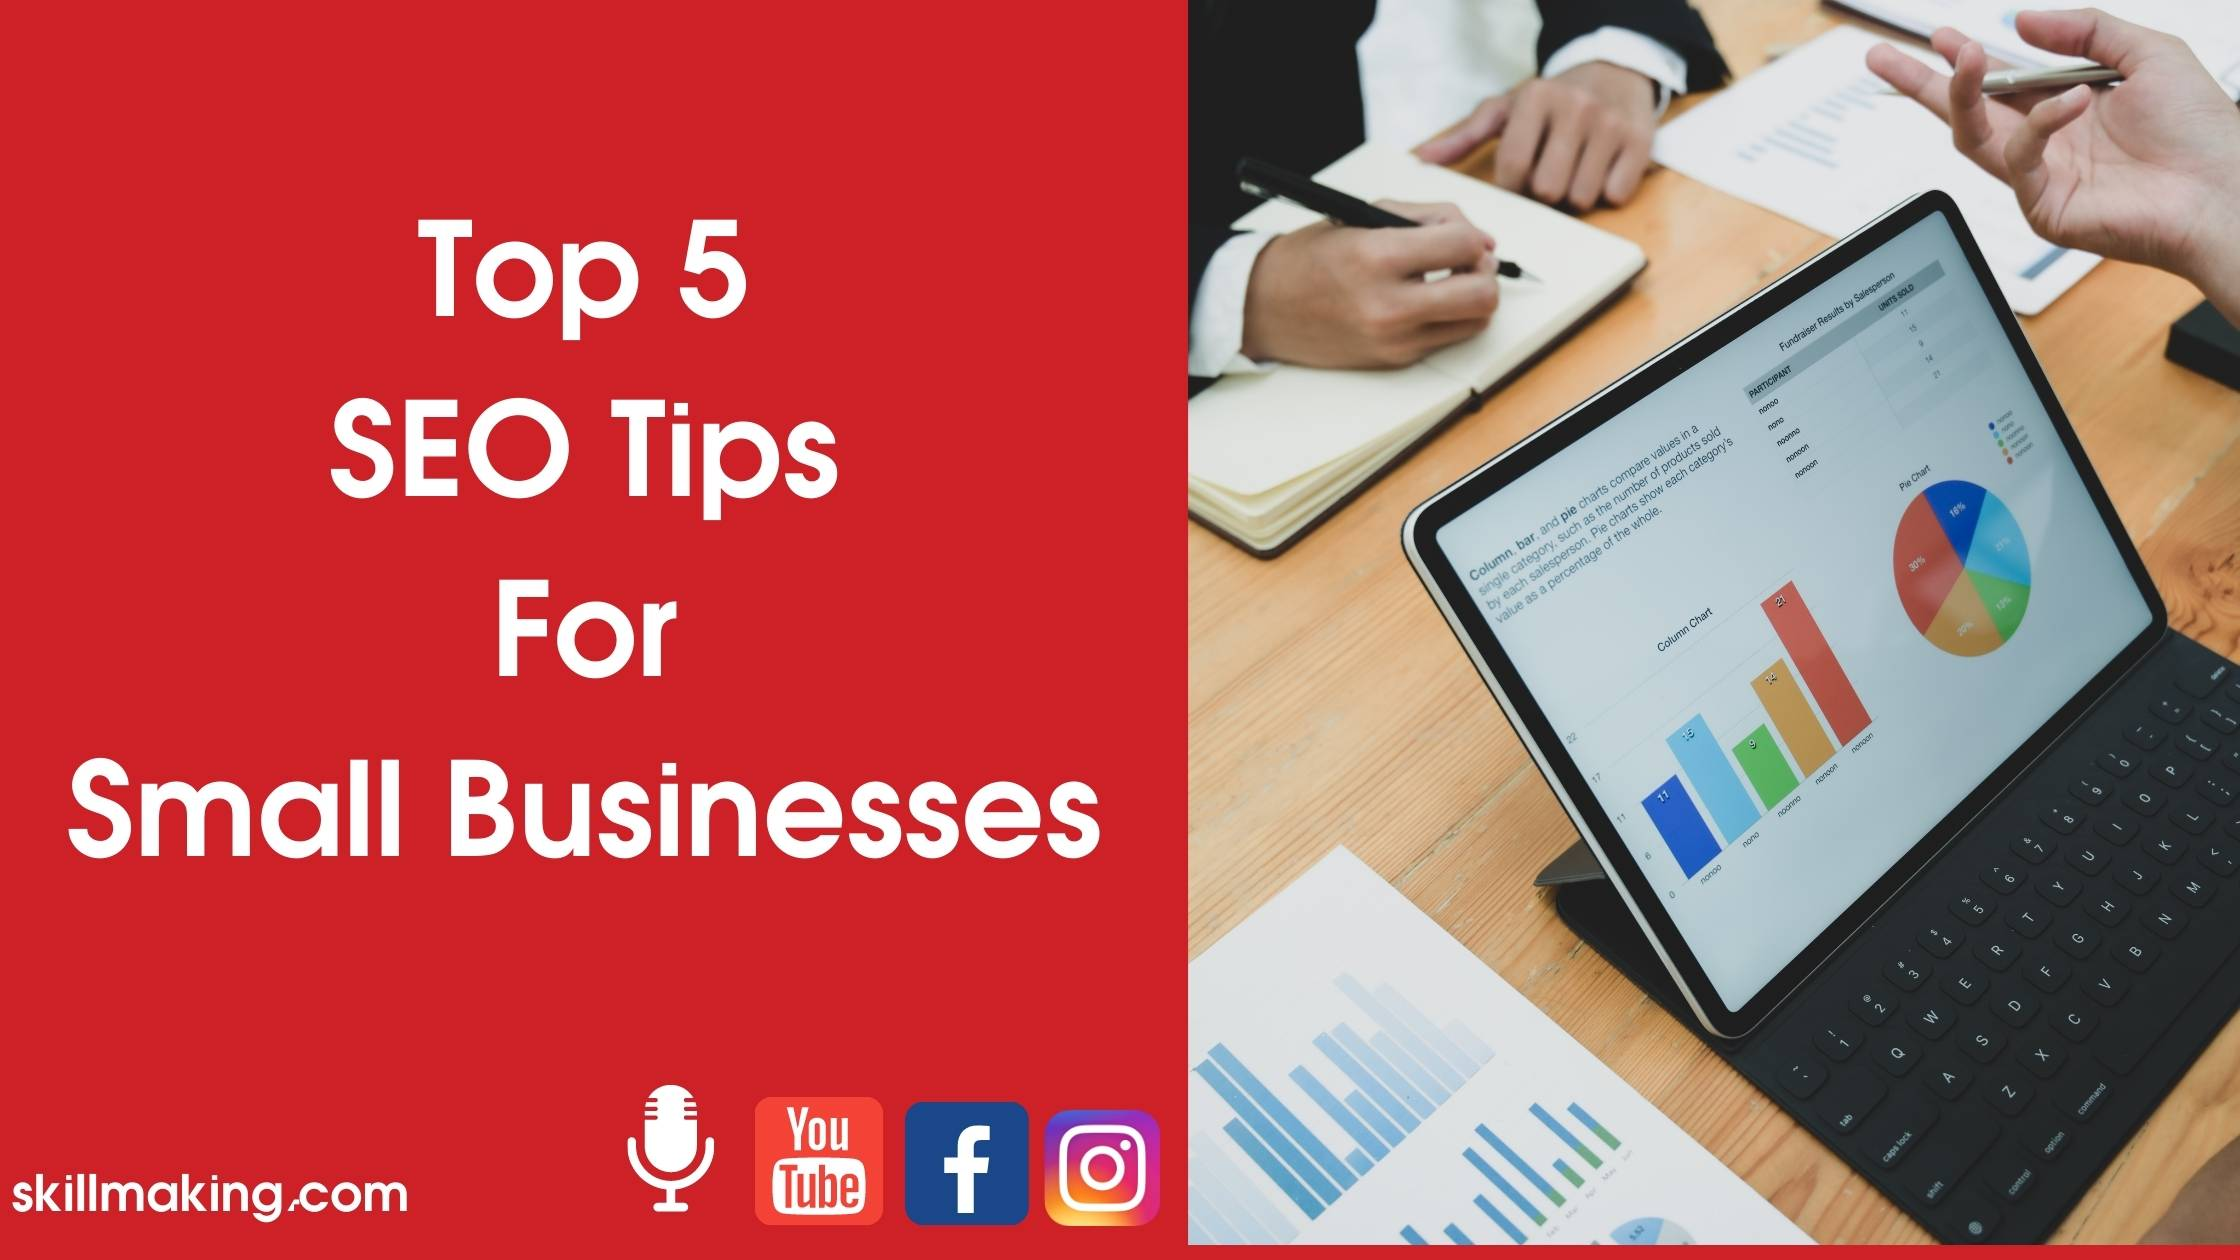 Top 5 SEO Tips For Small Businesses in 2020